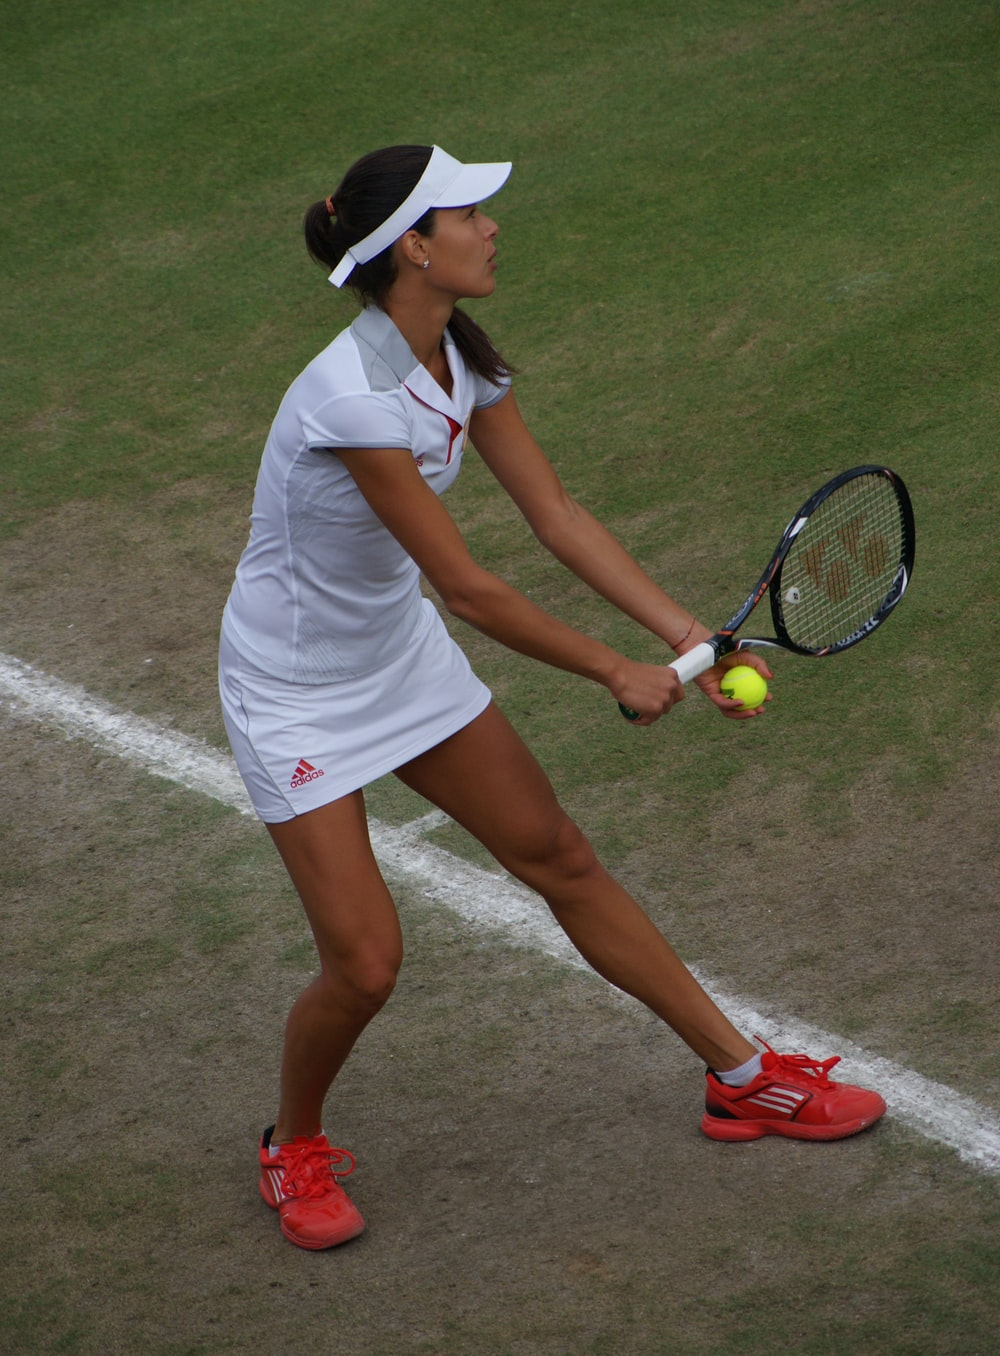 woman holding tennis racket and ball